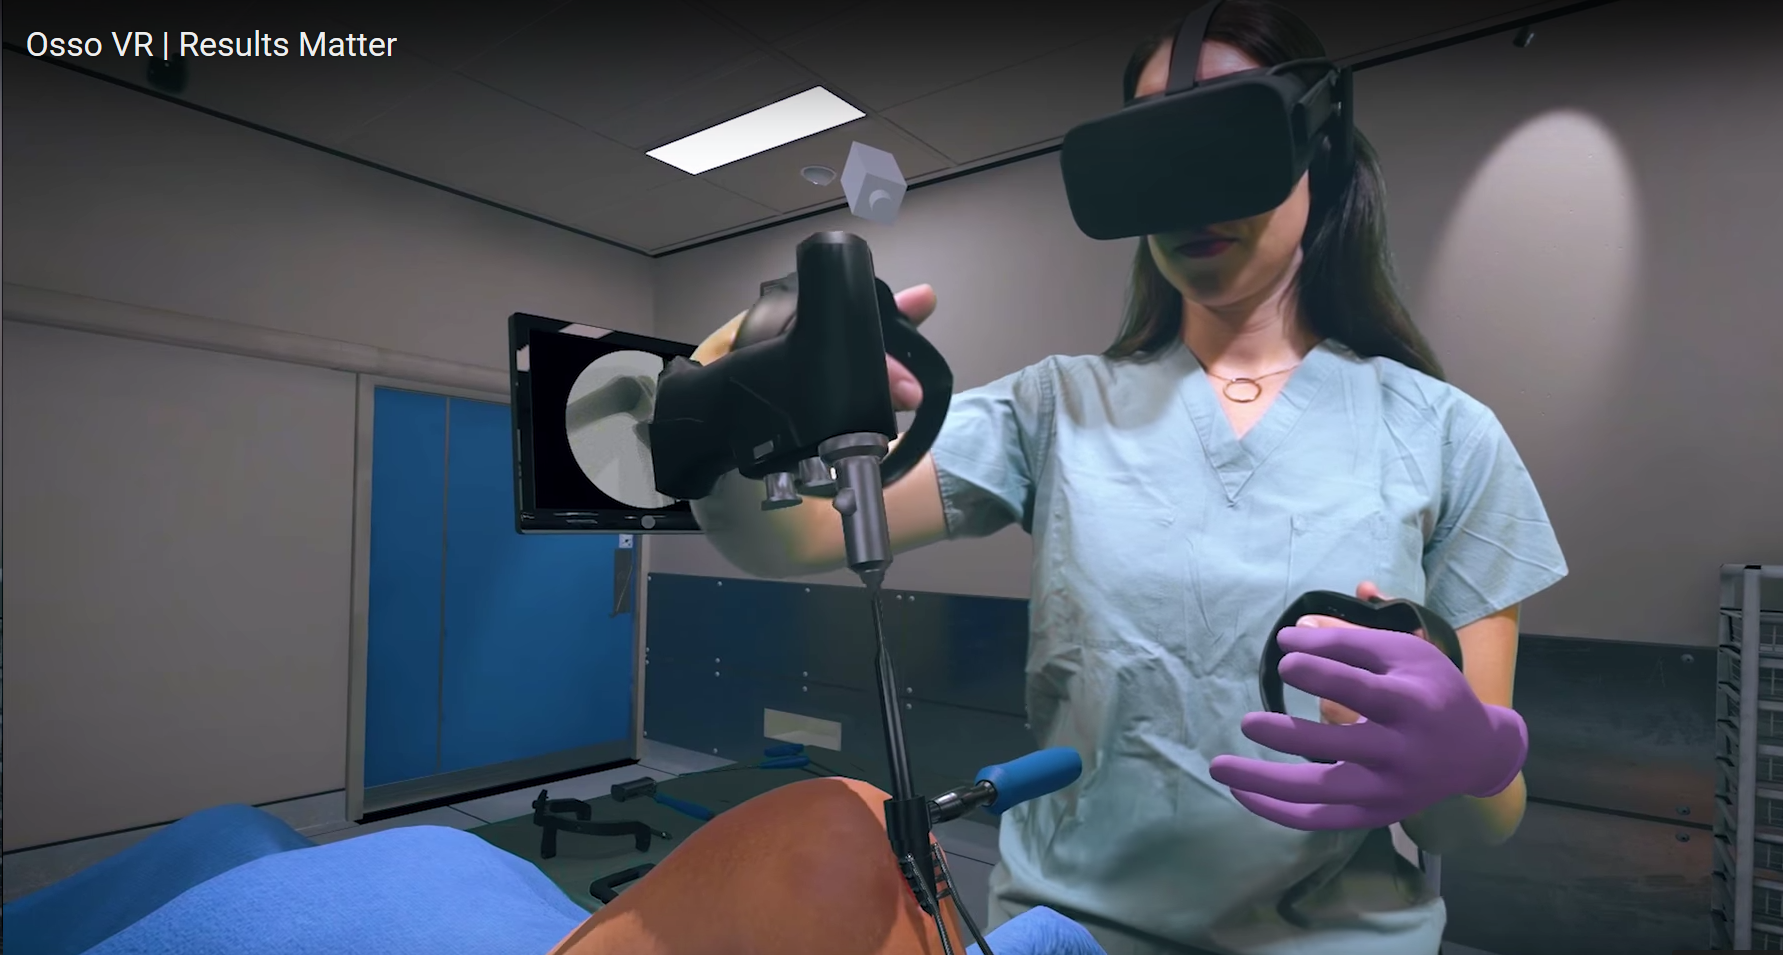 Female medical student training for surgery using virtual reality